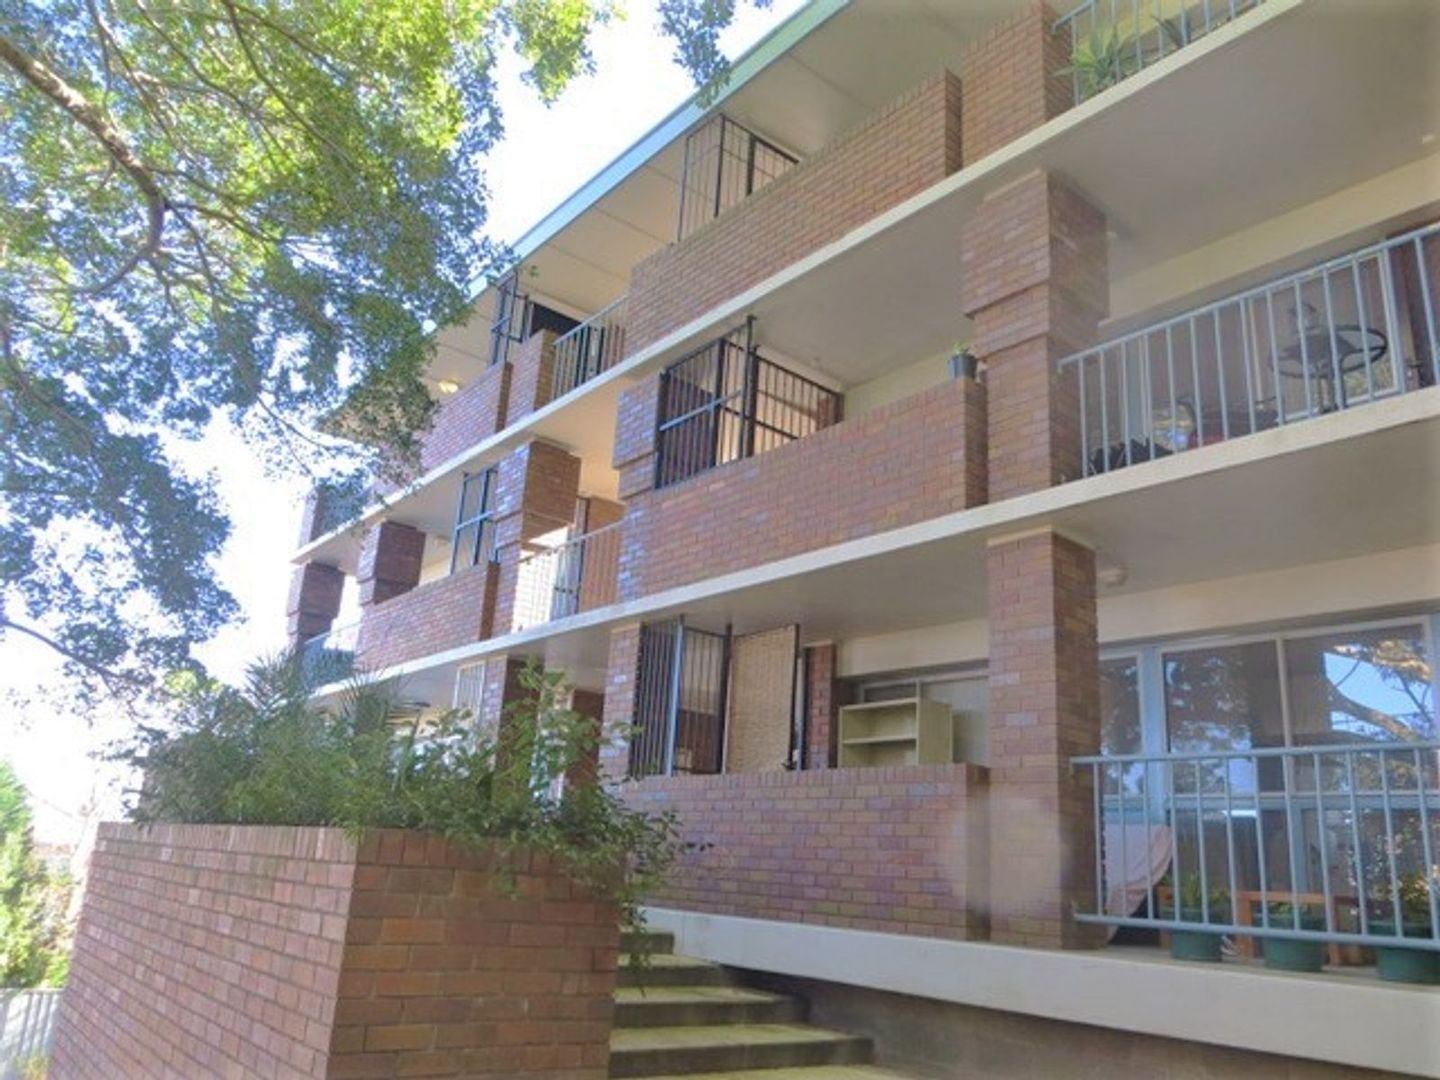 8/90-100 Tyrrell Street, The Hill NSW 2300, Image 1